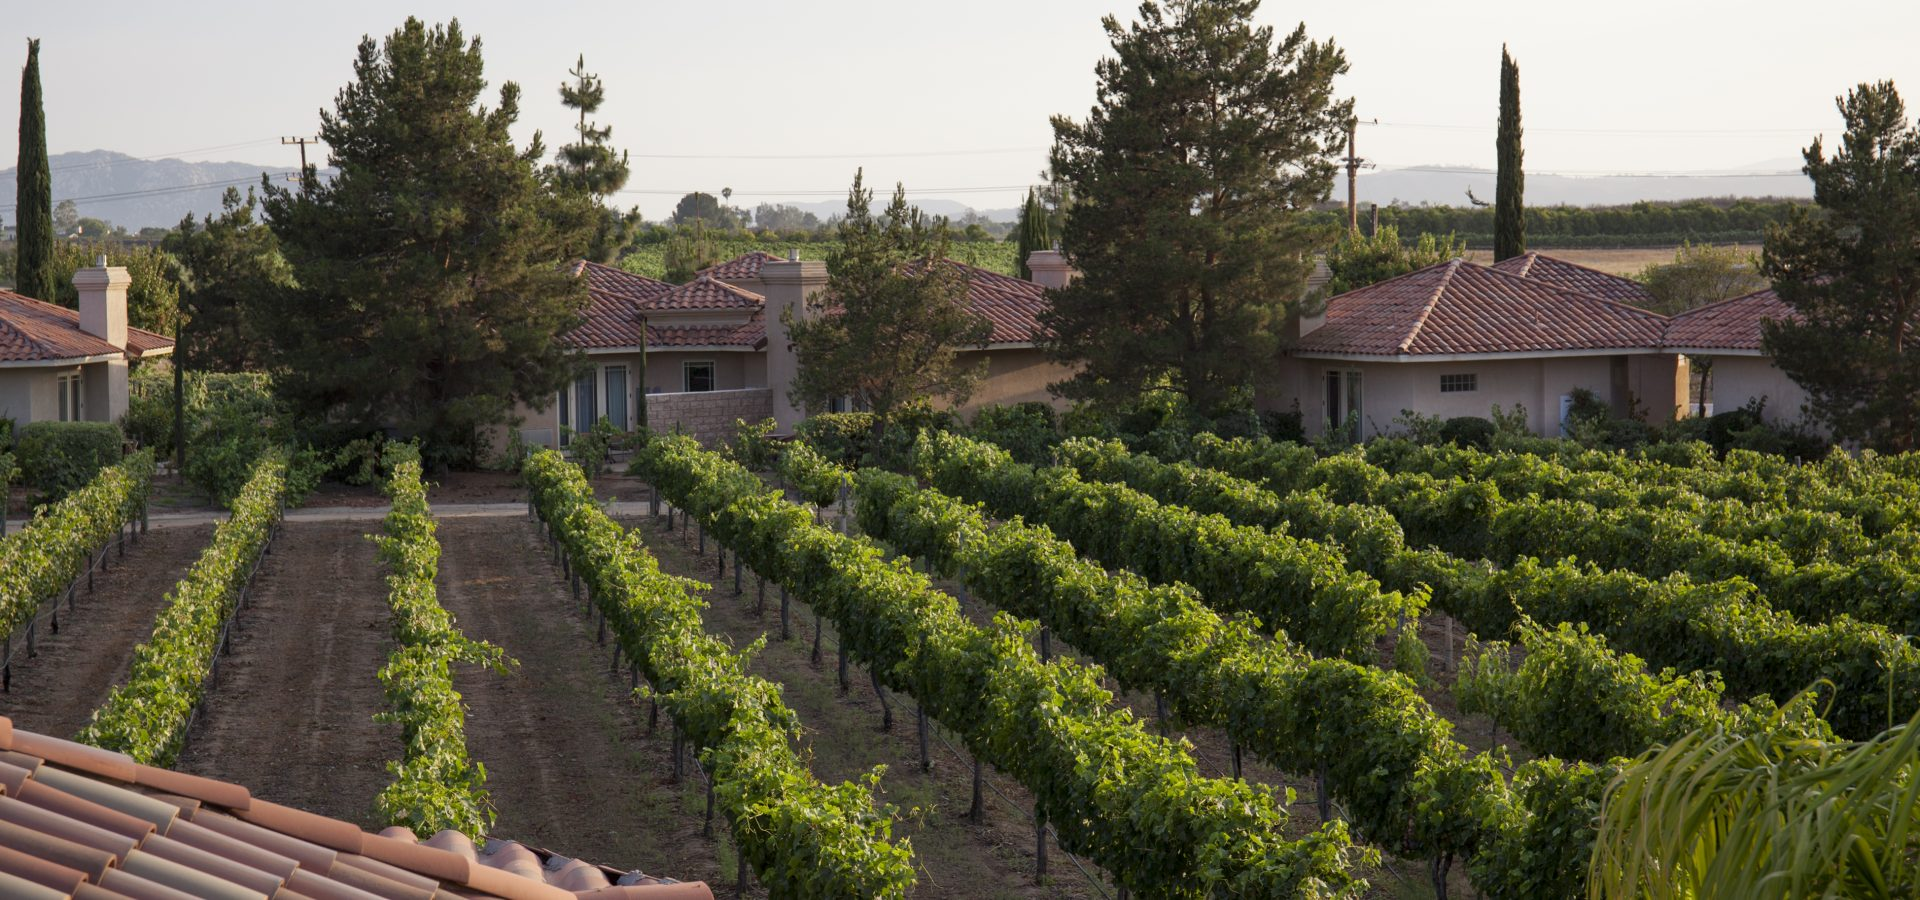 wine vineyards lined in front of south coast winery resort and spa